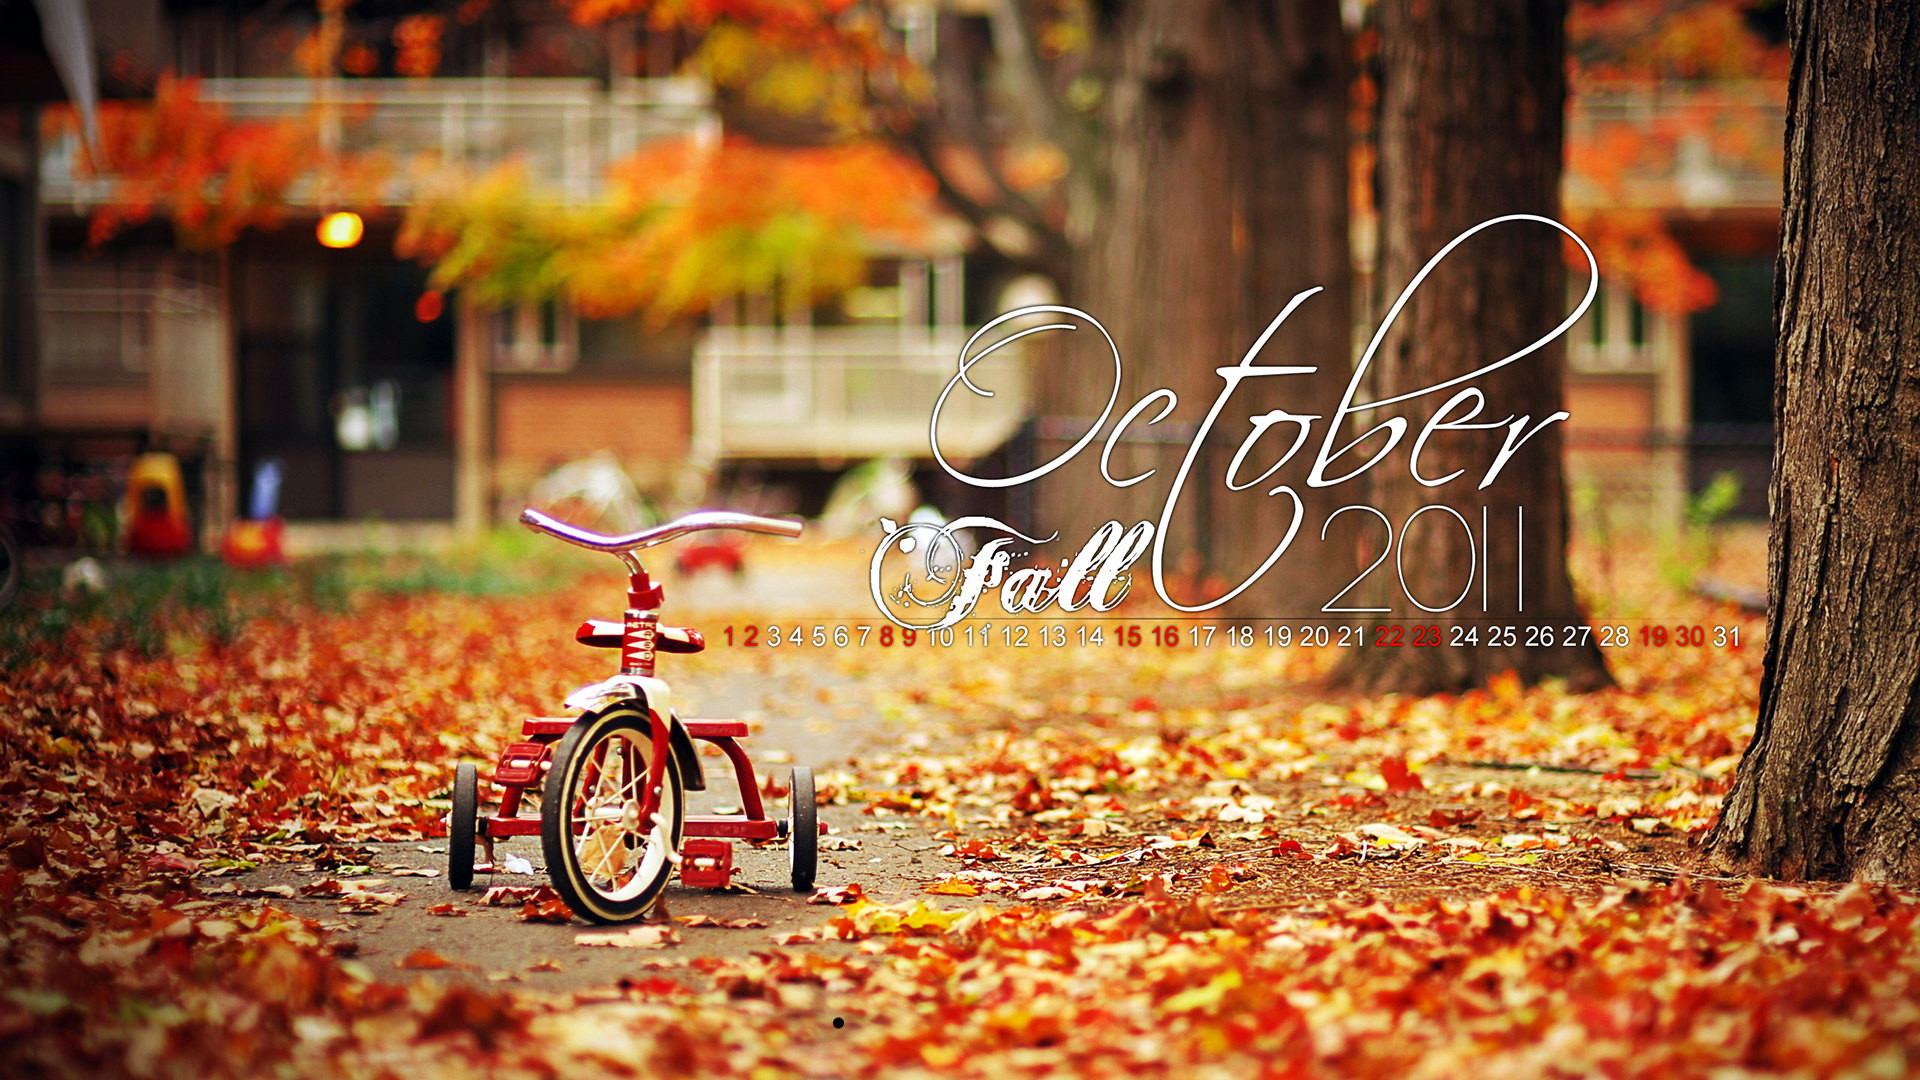 1920x1080 Autumn Fall October Calendar HD Wallpaper